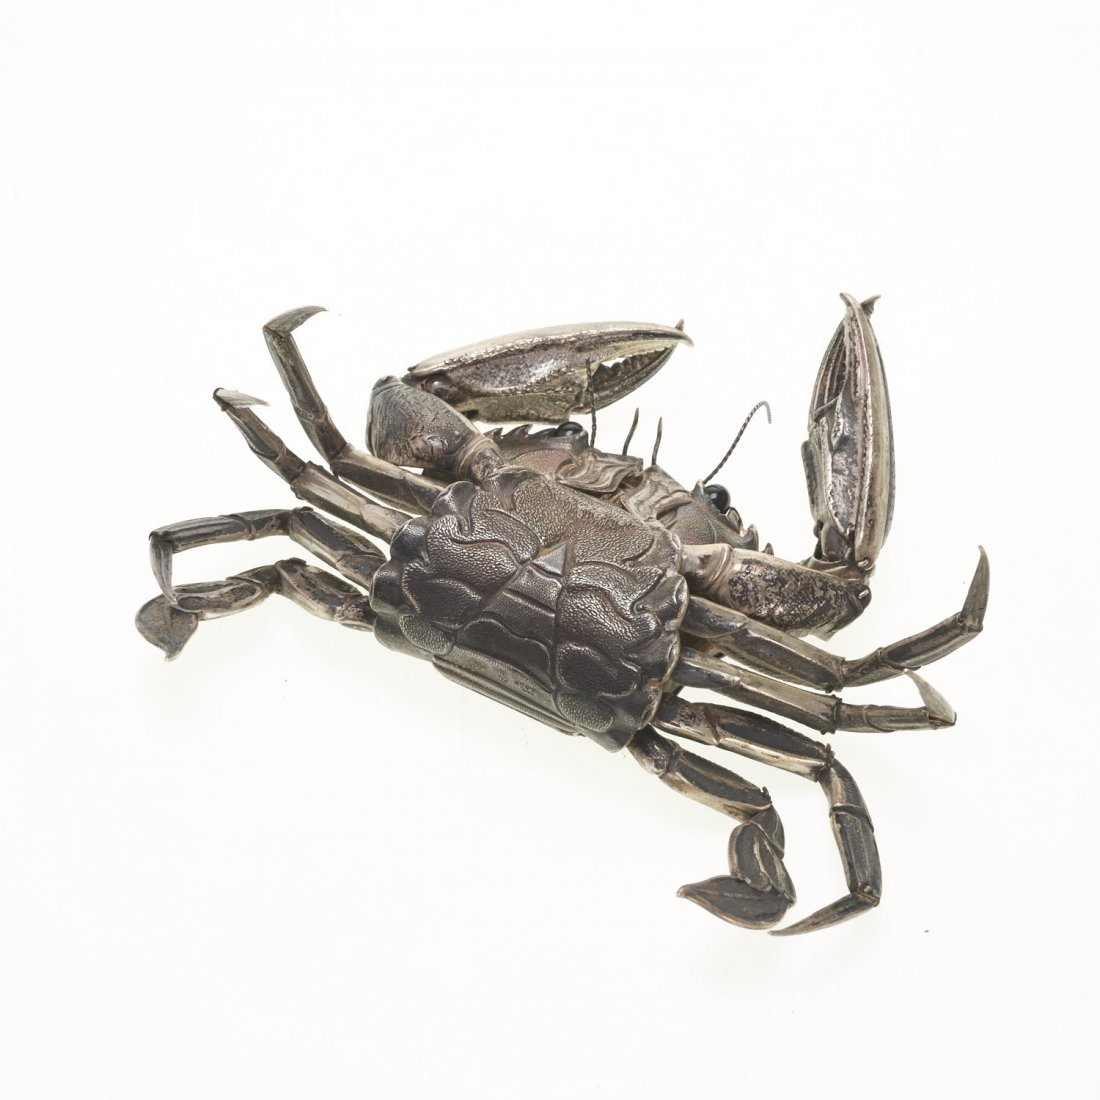 Spanish silver articulated model of a crab - 7